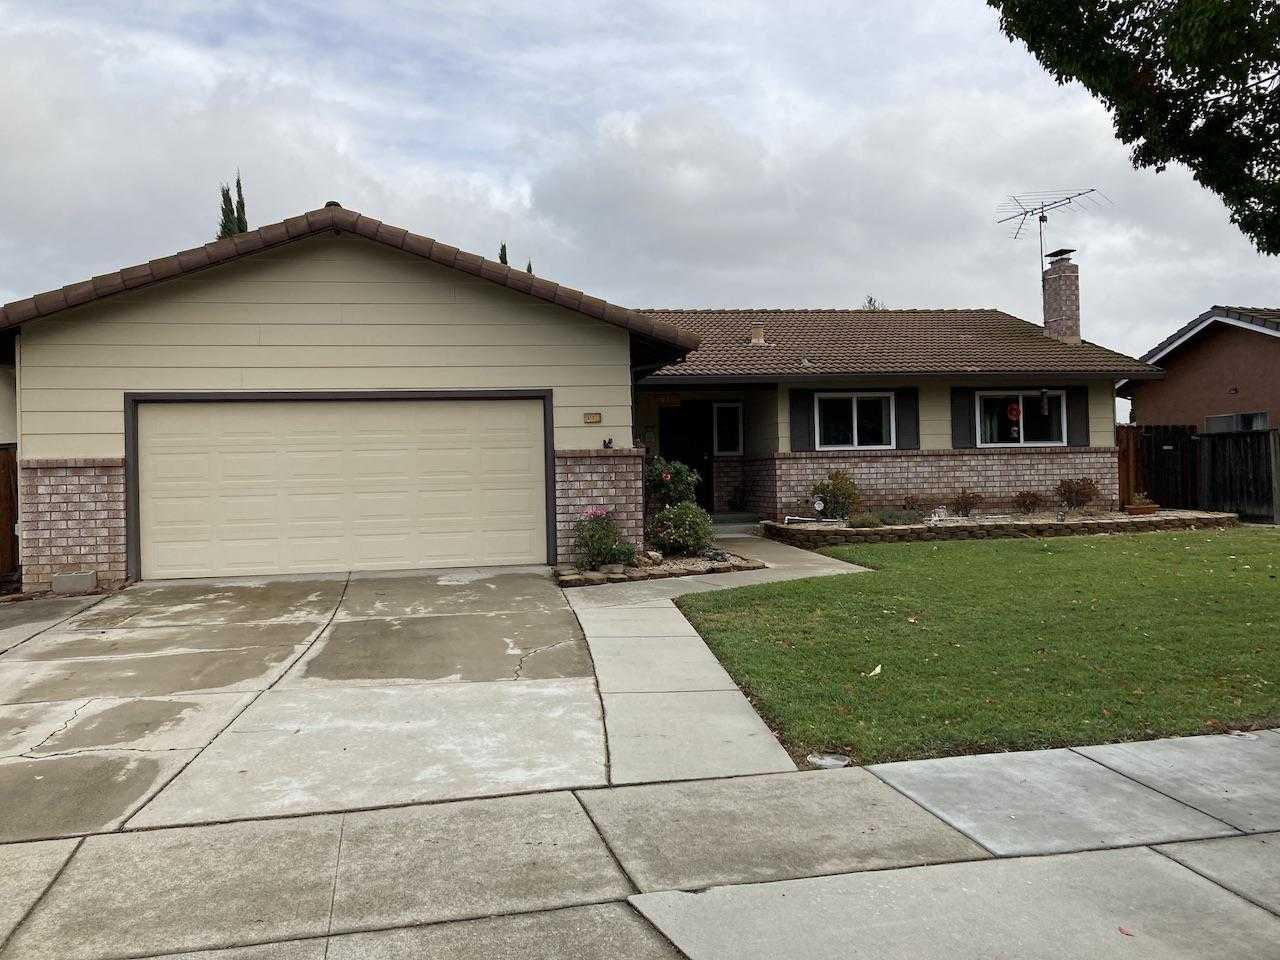 $1,298,800 - 4Br/3Ba -  for Sale in San Jose